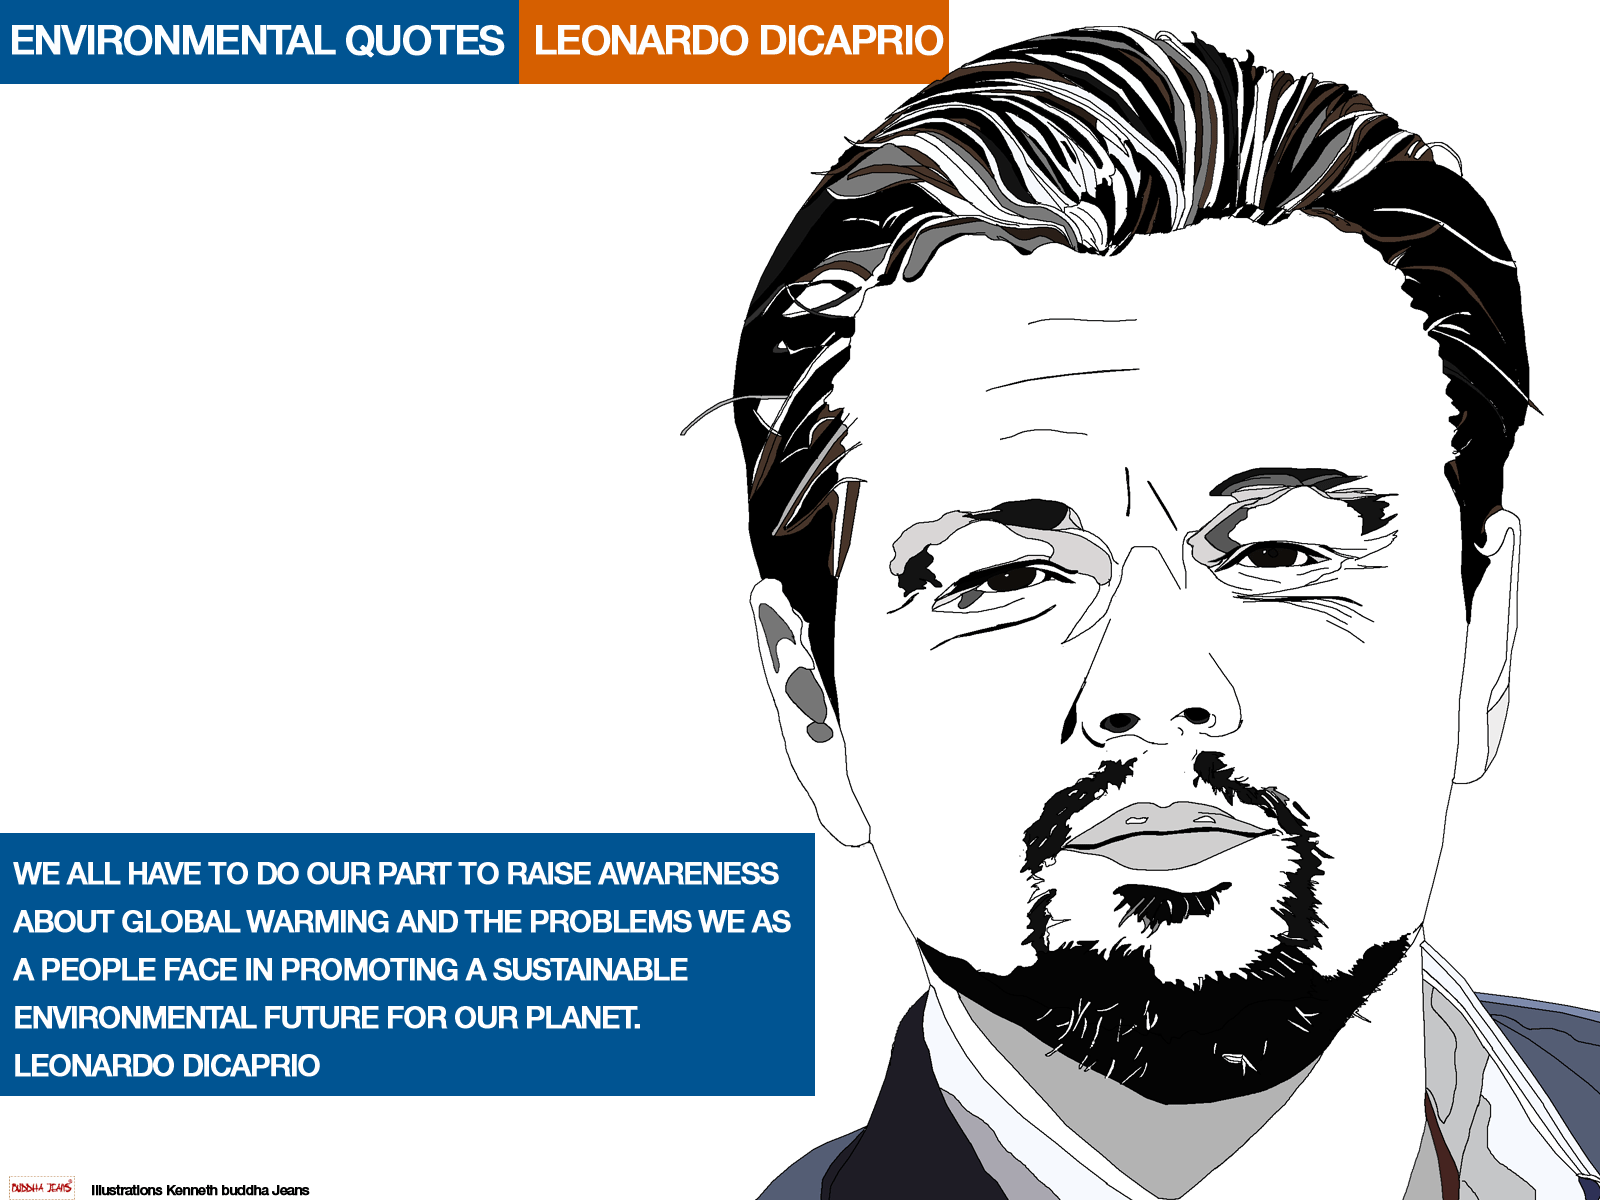 leonardo-dicaprio-quotes-about-the-environment